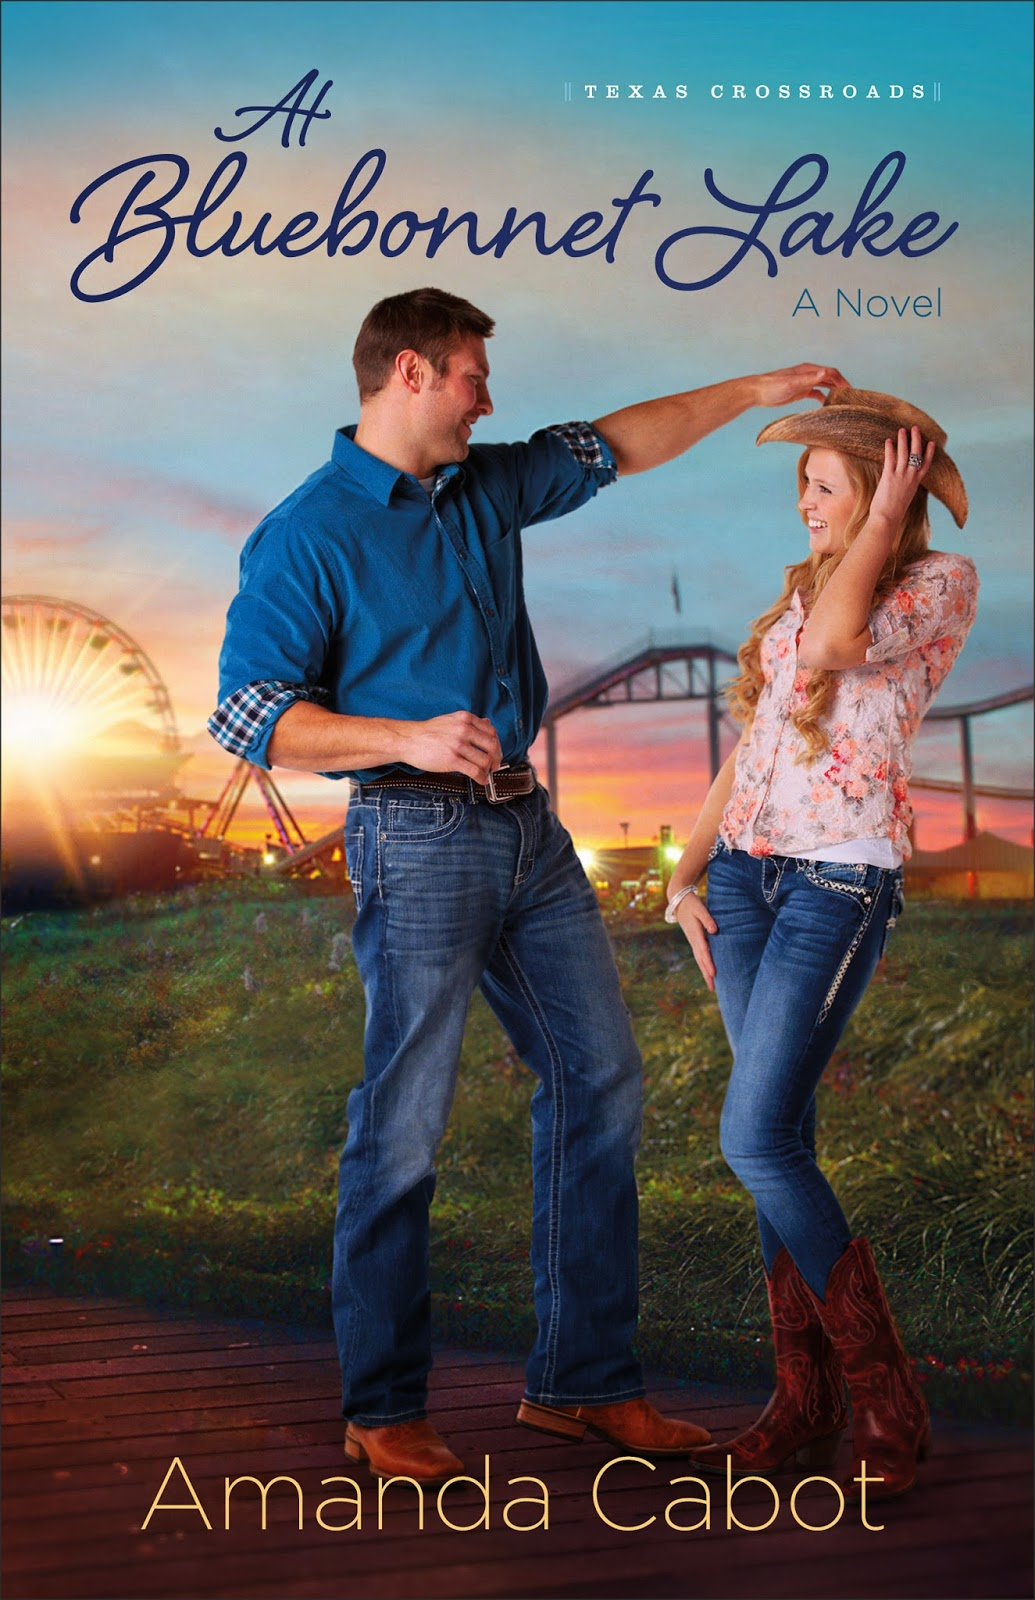 Review - A Bluebonnet Lake